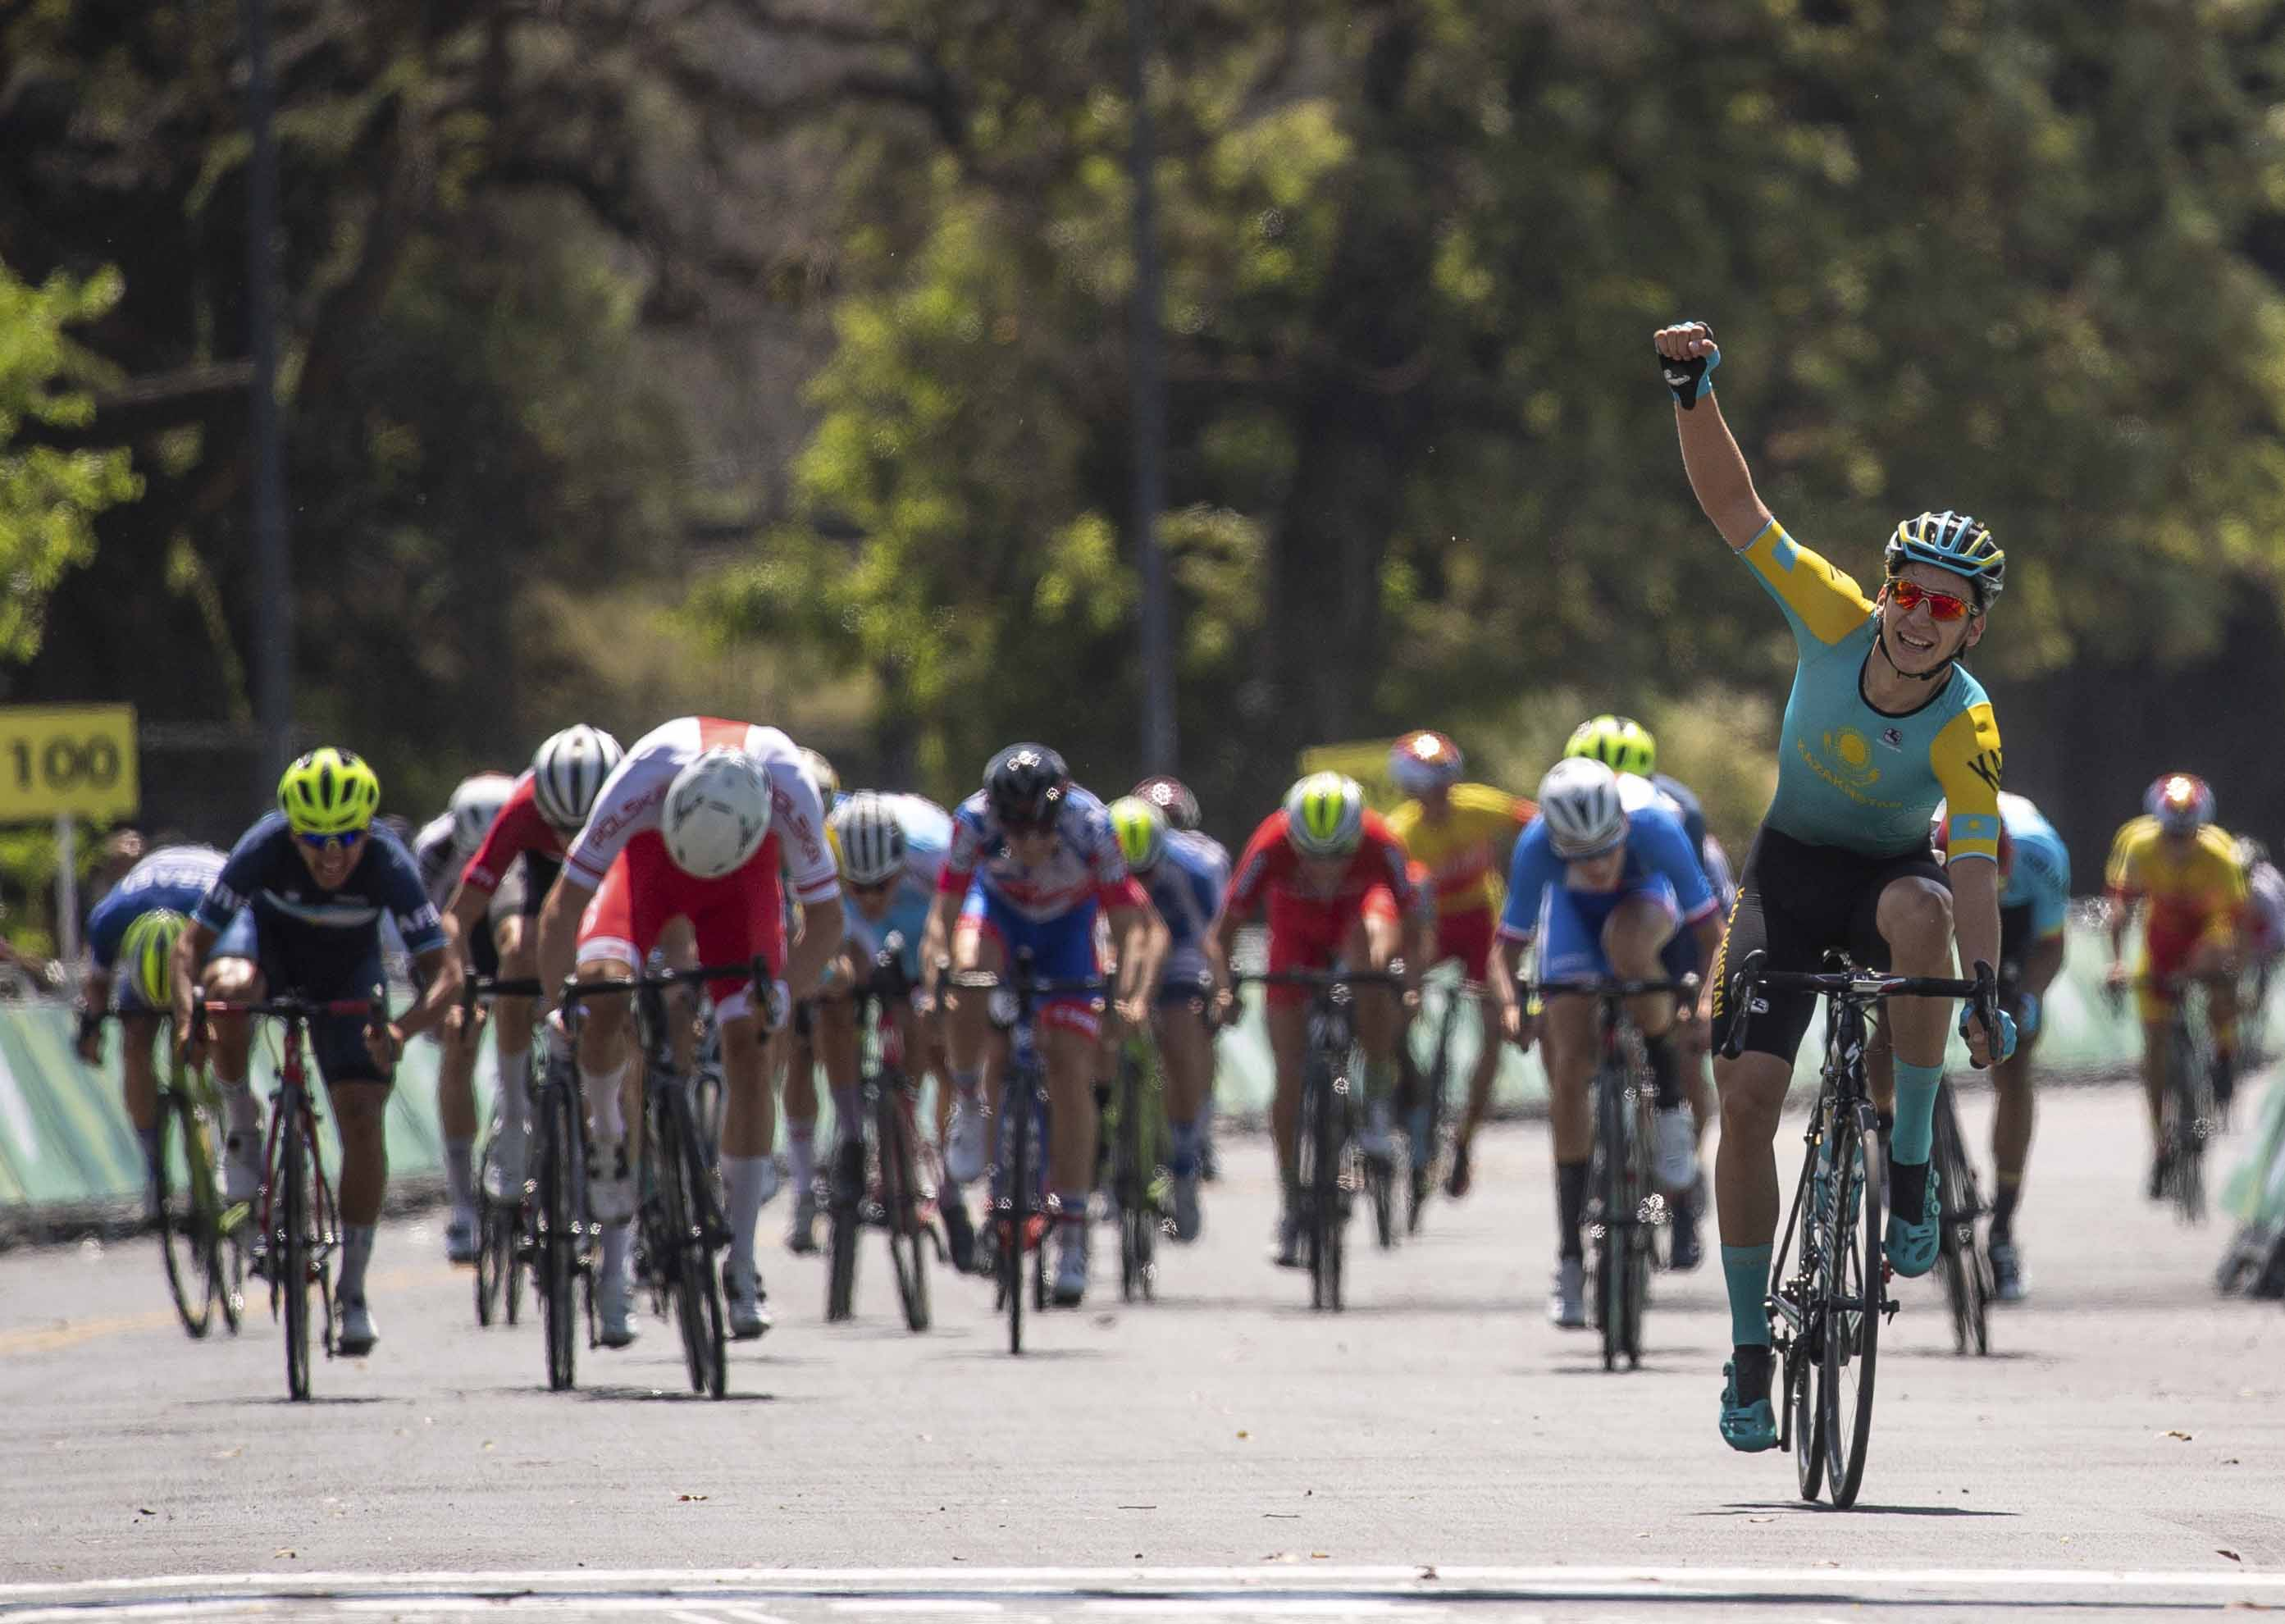 In this photo provided by the OIS/IOC, Gleb Brussenskiy of Kazakhstan celebrates his team's gold medal win as he finishes in the Cycling Men's Combined Criterium at Bosques de Palermo, during the Youth Olympic Summer Games in Buenos Aires, Argentina on Wednesday